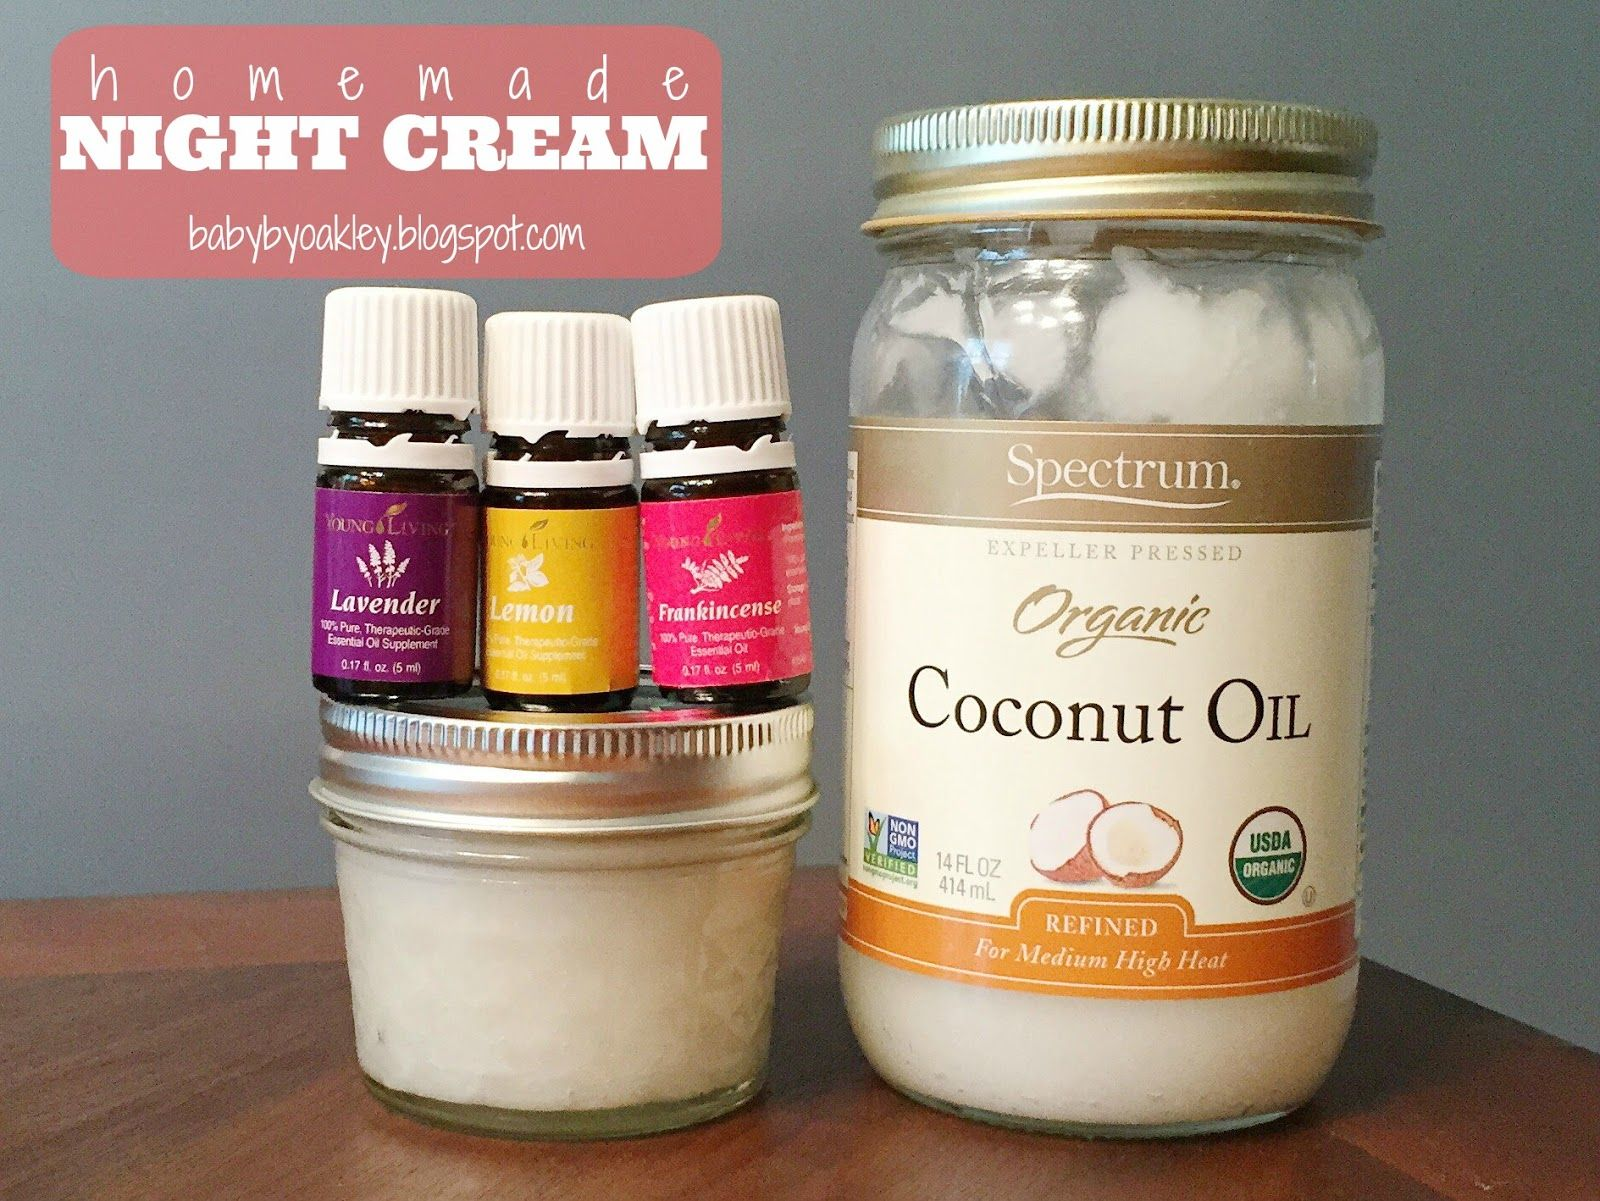 Diy Night Cream 3 Cup Whipped Coconut Oil 10 Drops